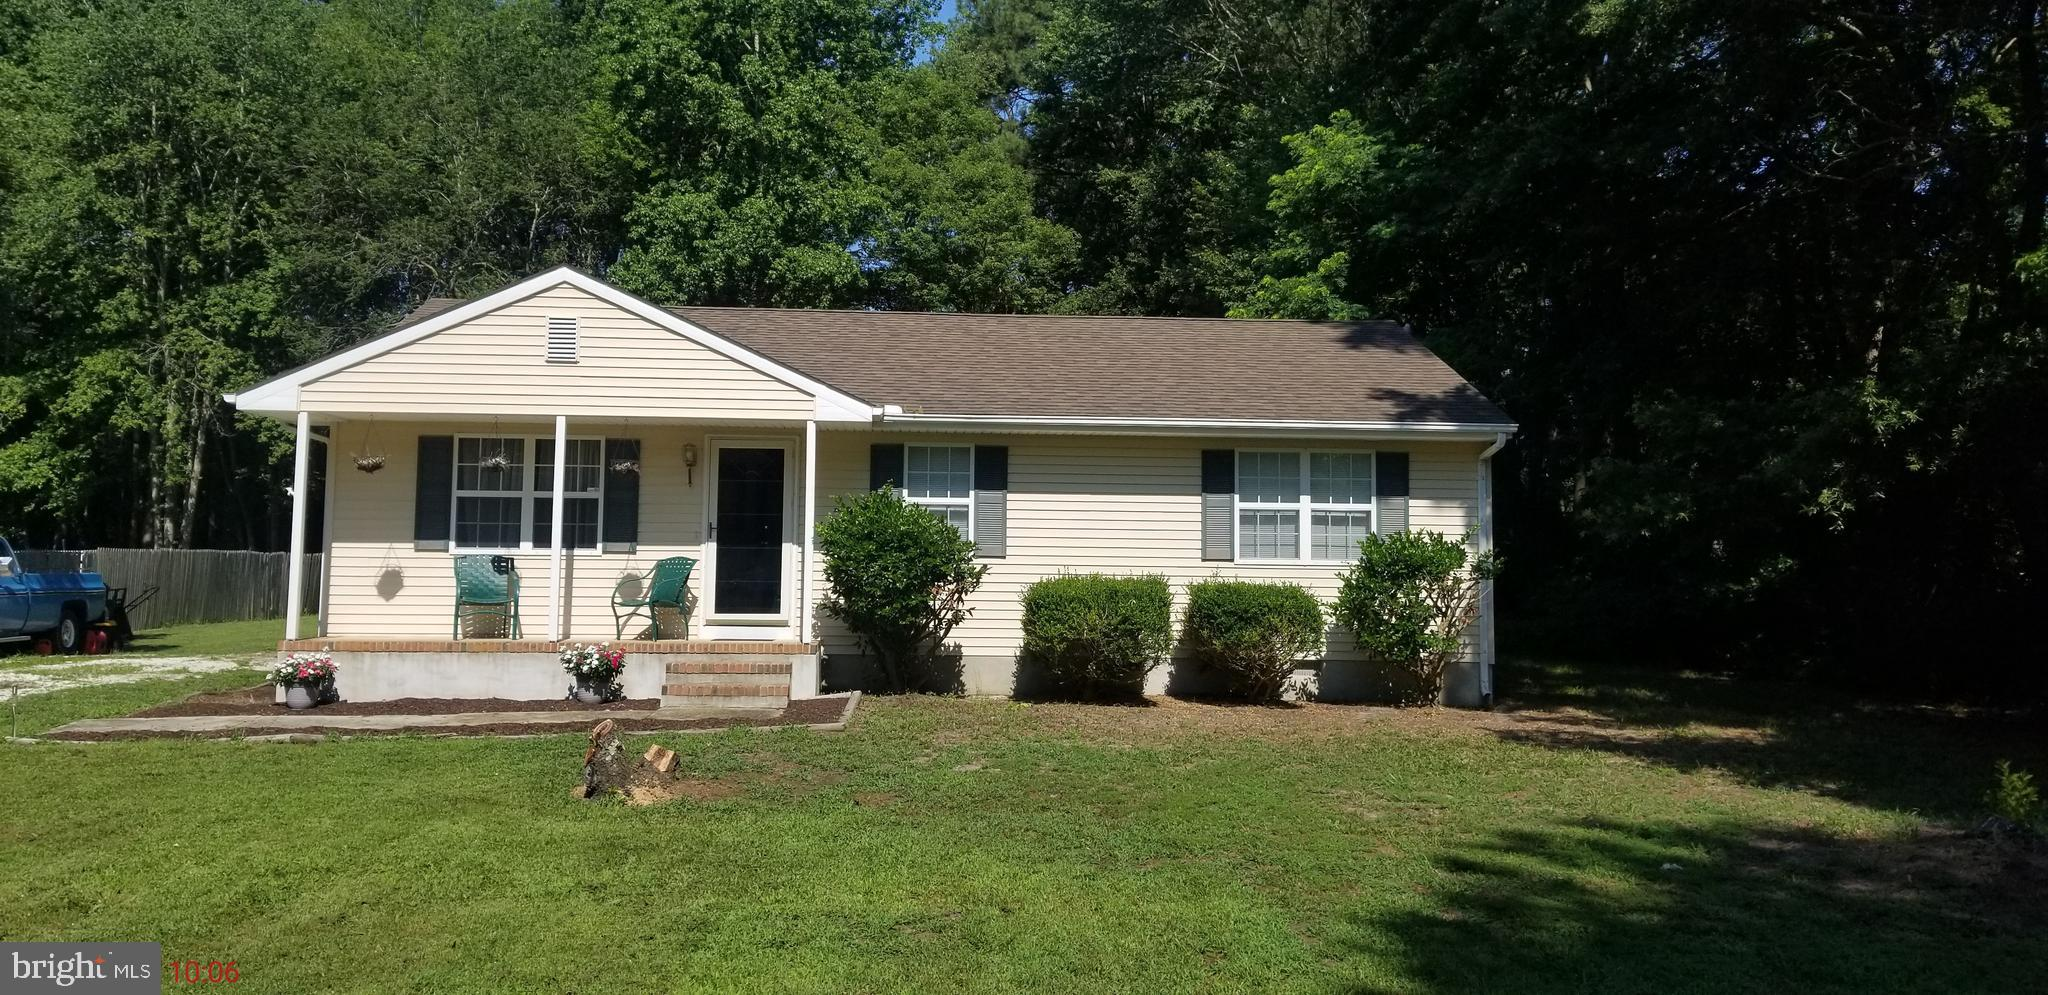 Enjoy peace and quiet in this AFFORDABLE home on a large lot(.68 acres) just outside of Salisbury- no HOA fees and low property taxes (~$100/month) make this an easy decision and a GREAT investment.  Perfect outdoor space for a garden, room to play,  storage shed, and plenty of parking space.   Inside, you will find an open plan for the kitchen/dining and living rooms, as well as 3 beds and 2 bathrooms.  Just add personal touches to make it your own.  New 'smart' (programmable) A/C unit just installed and seller will consider flooring credit with acceptable offer.